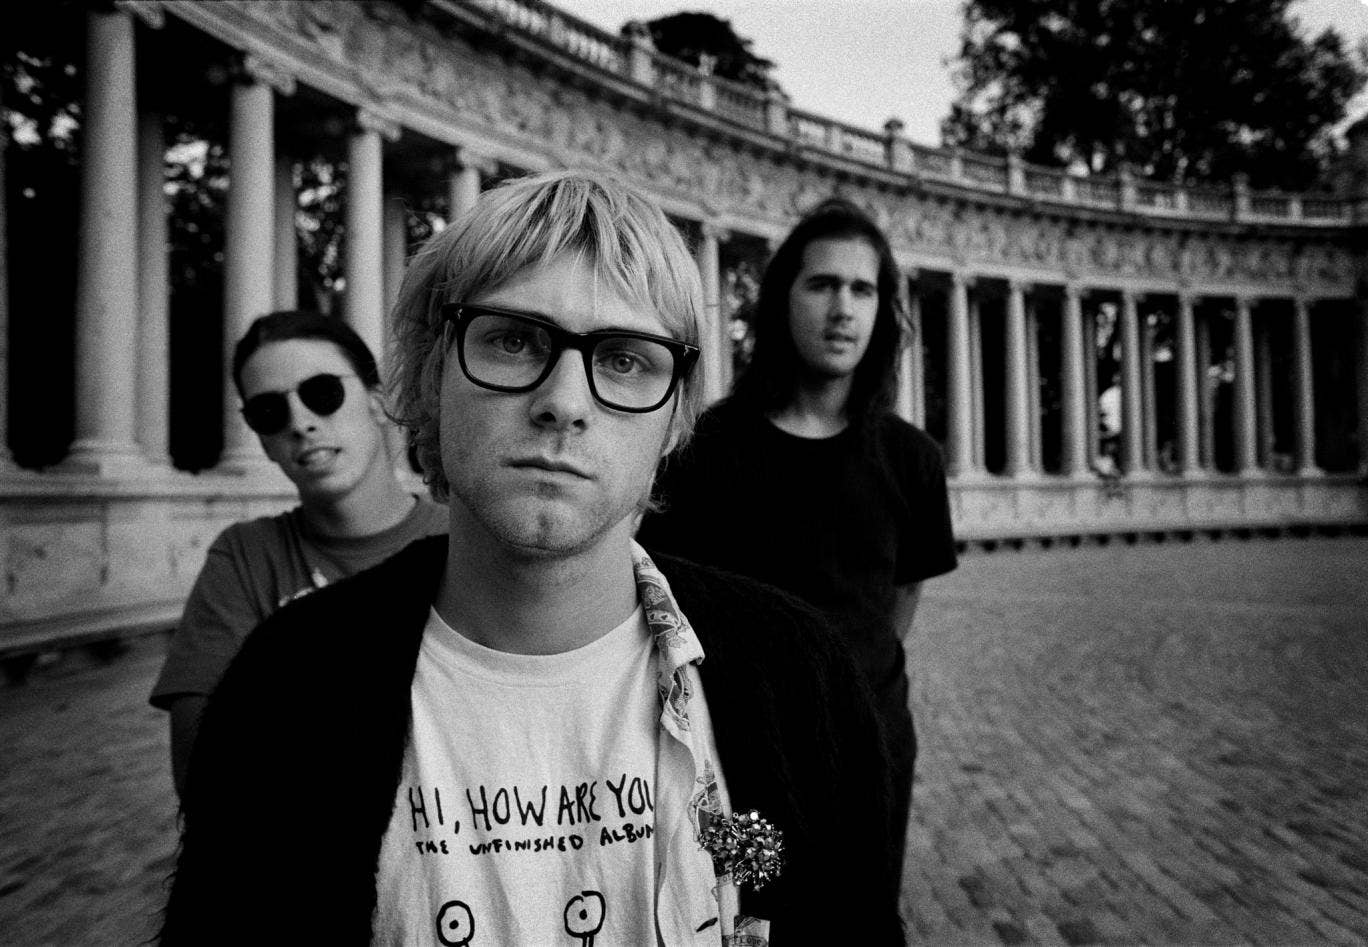 Charles Peterson and Steve Double's photographs of Kurt Cobain and Nirvana are on display in London's Proud Camden